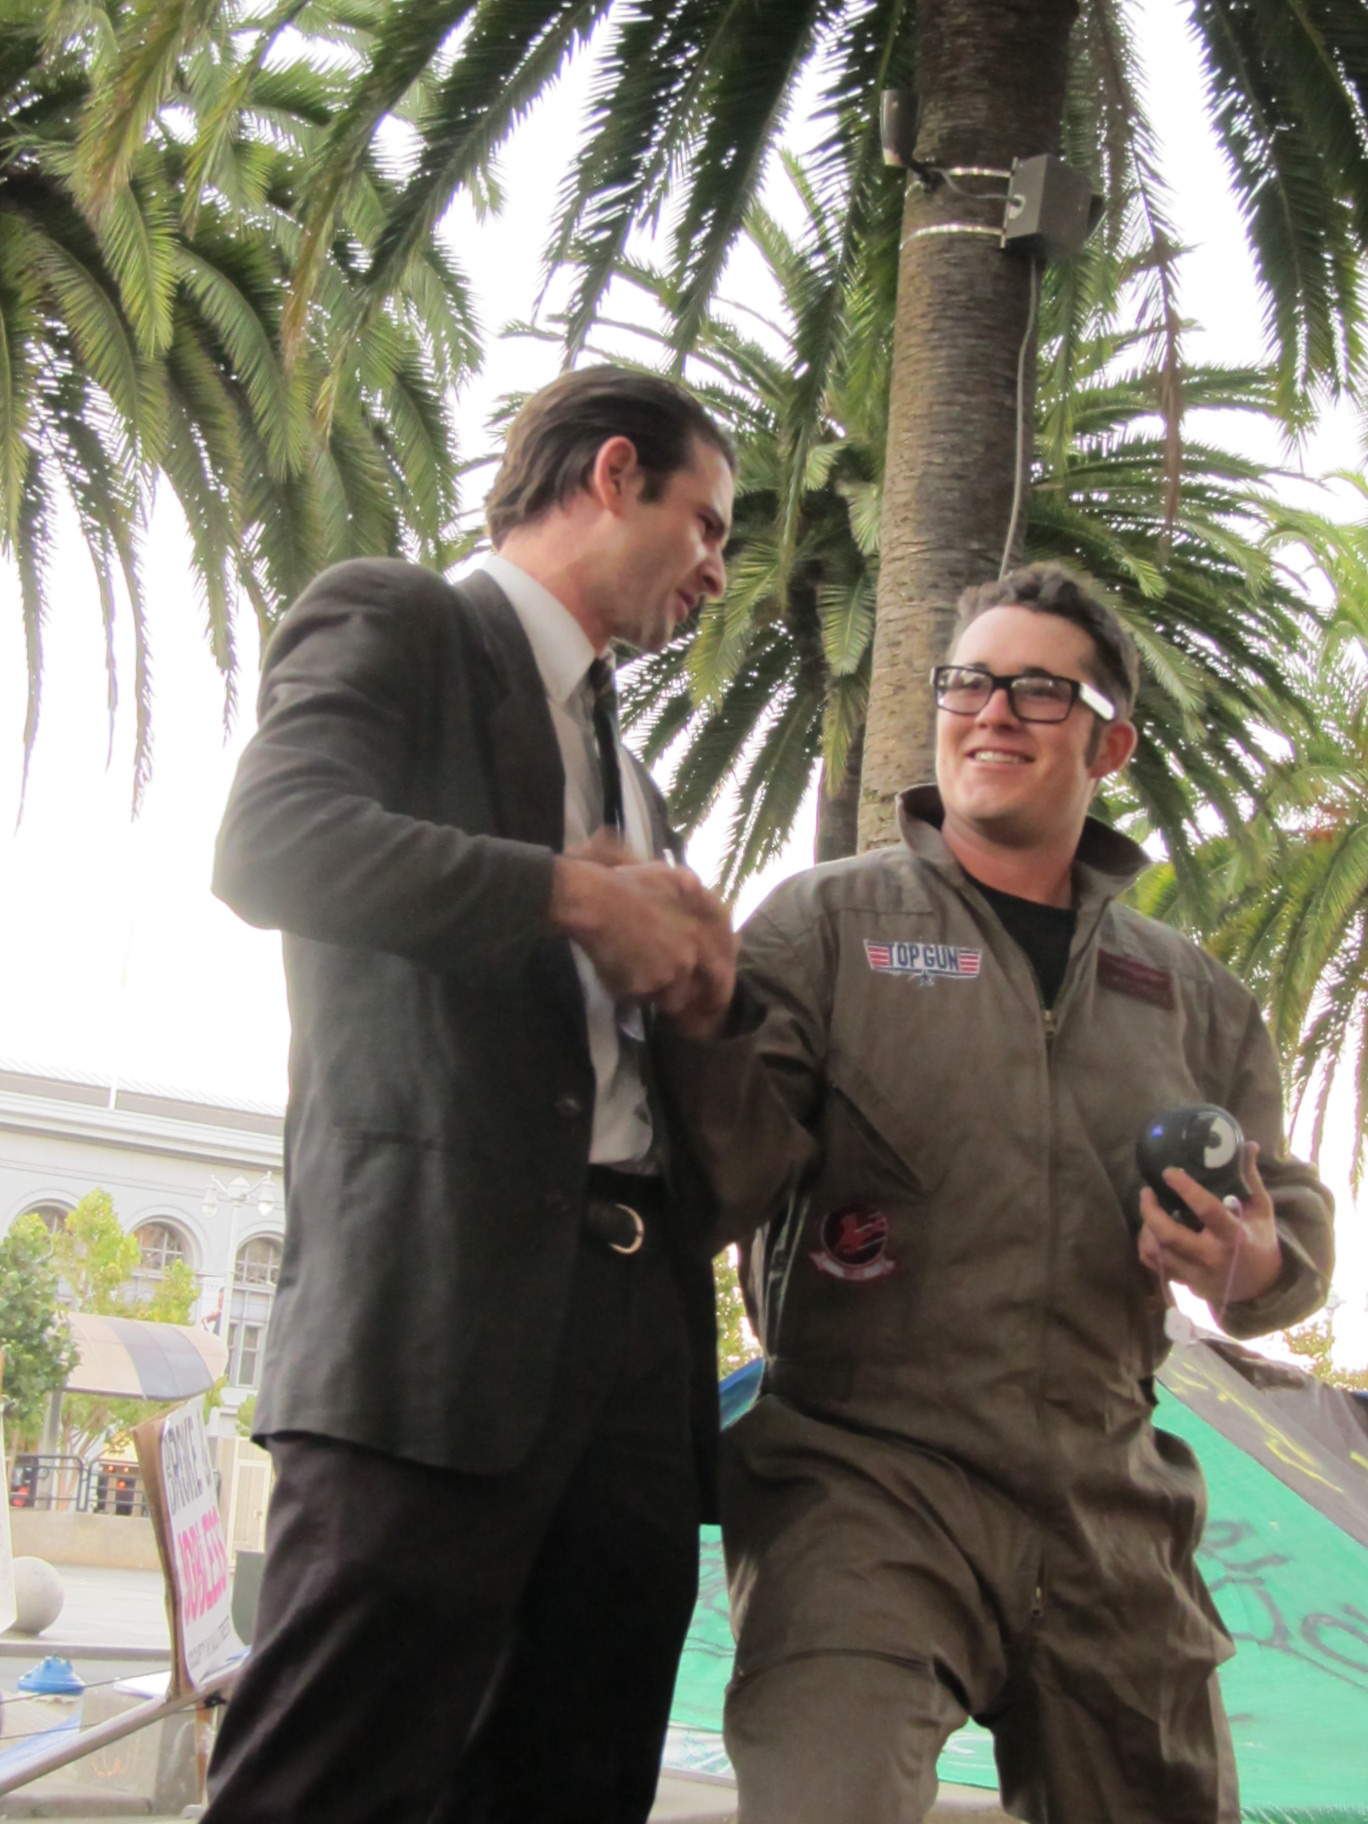 Spencer Blackhart performer in suit shakes the hand of a person wearing glasses and a Top Gun flightsuit.